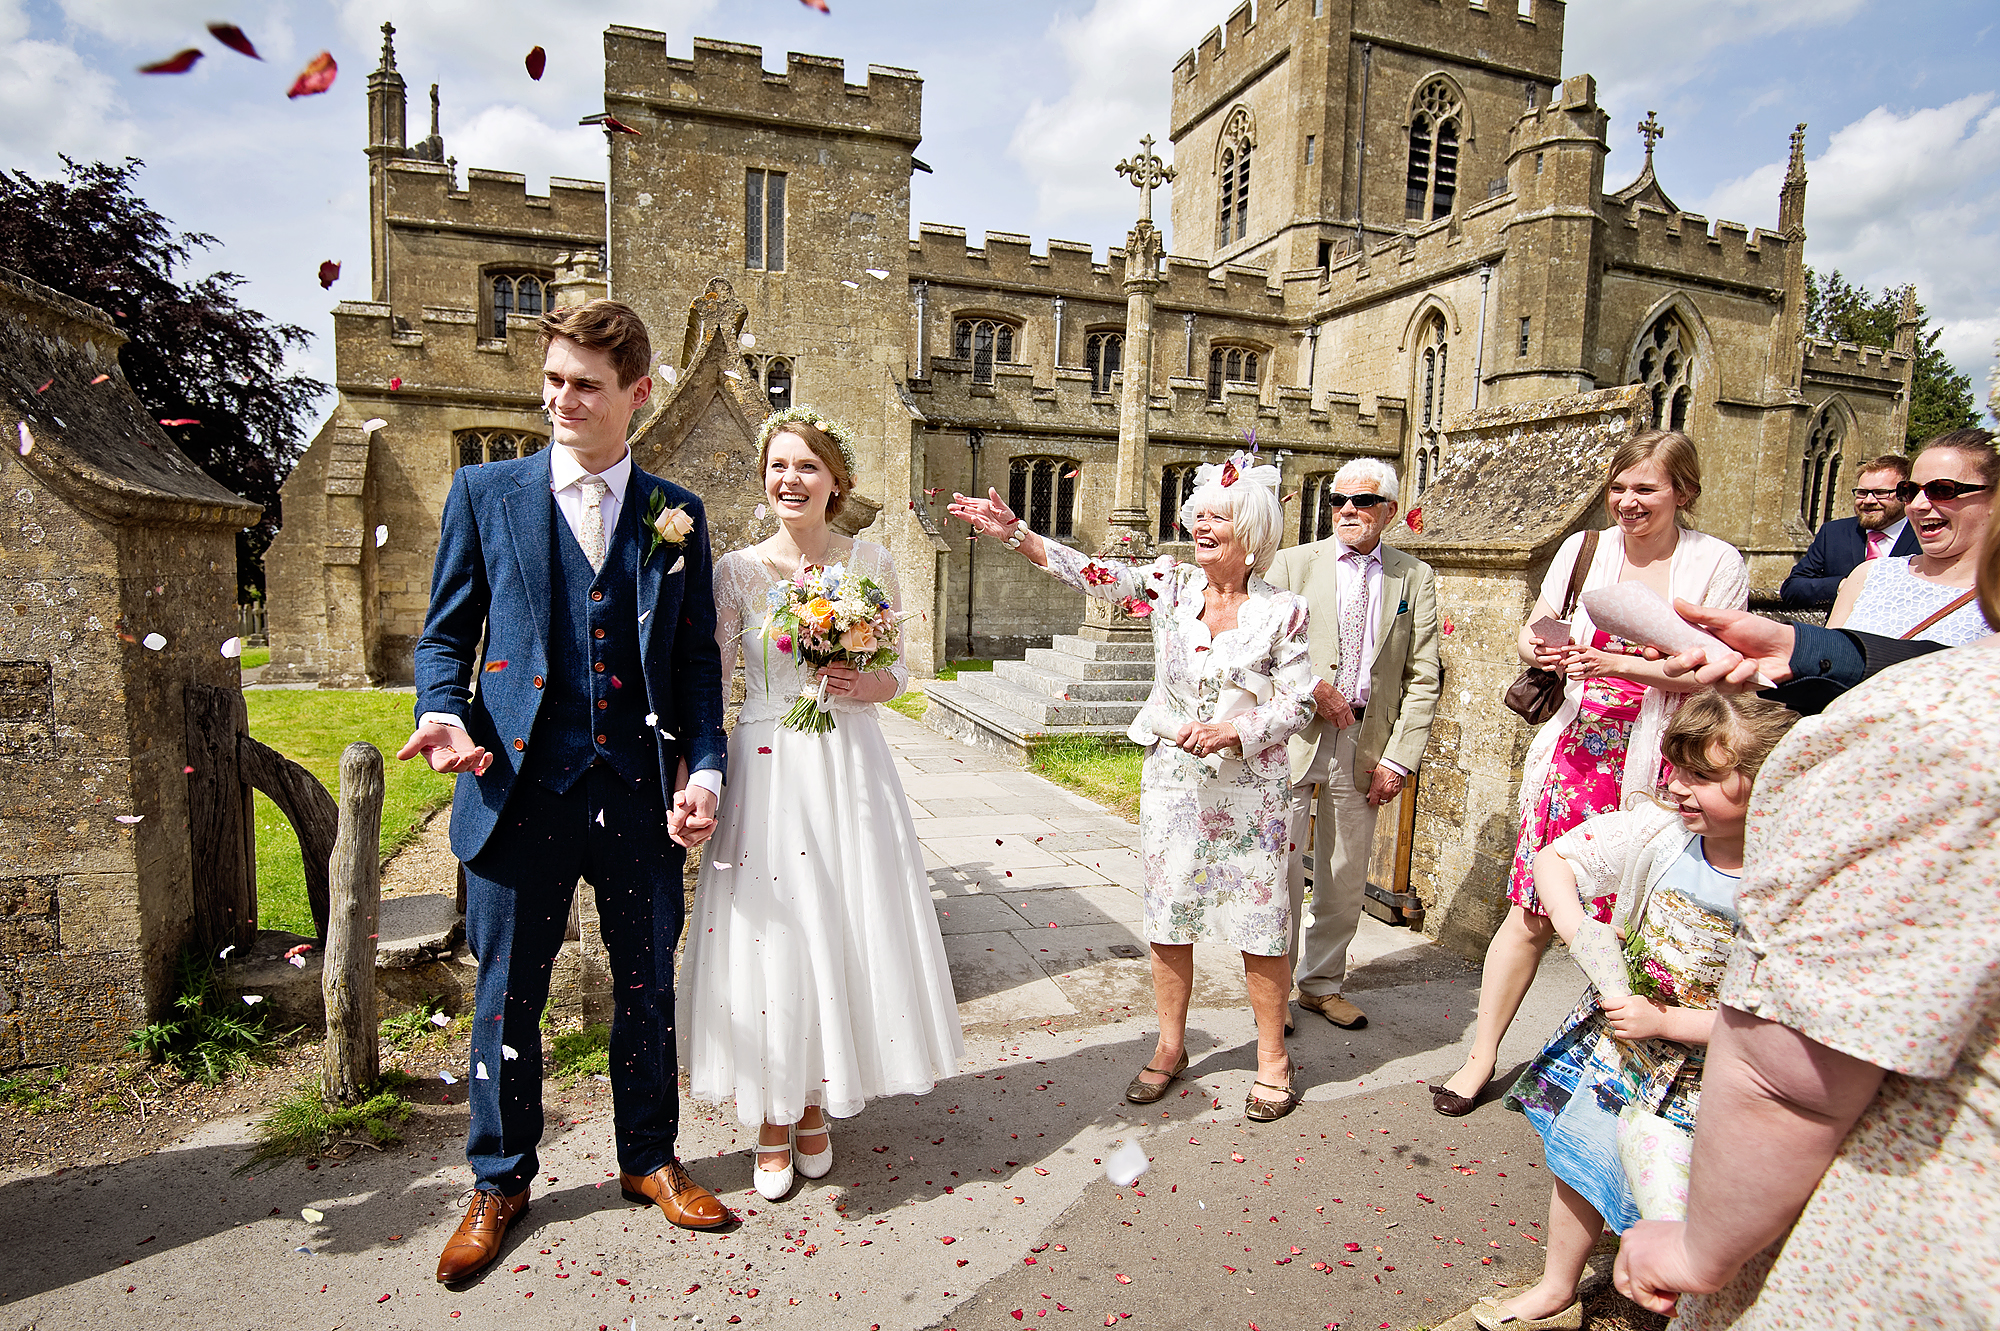 Guests throw confetti outside village church wedding in Wiltshire